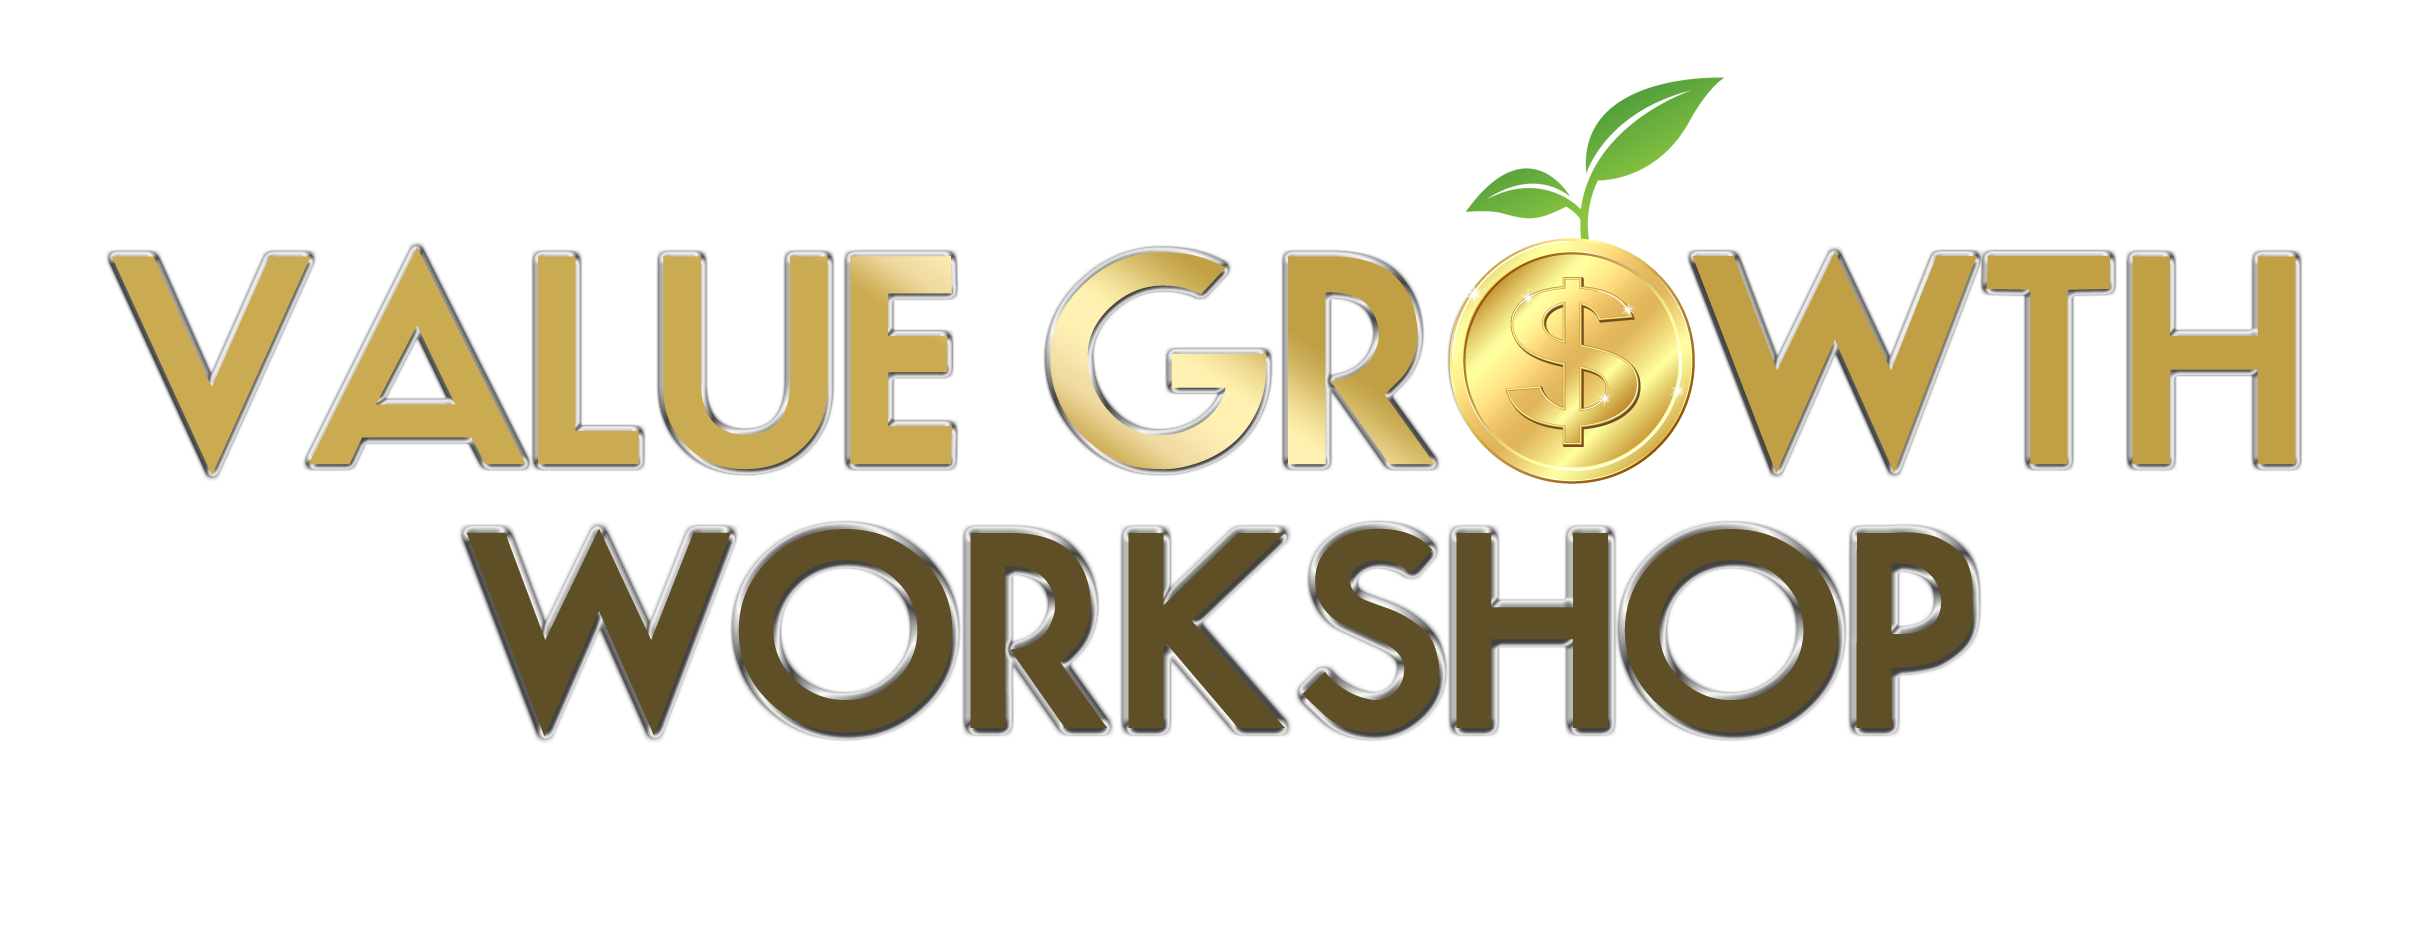 value growth workshop